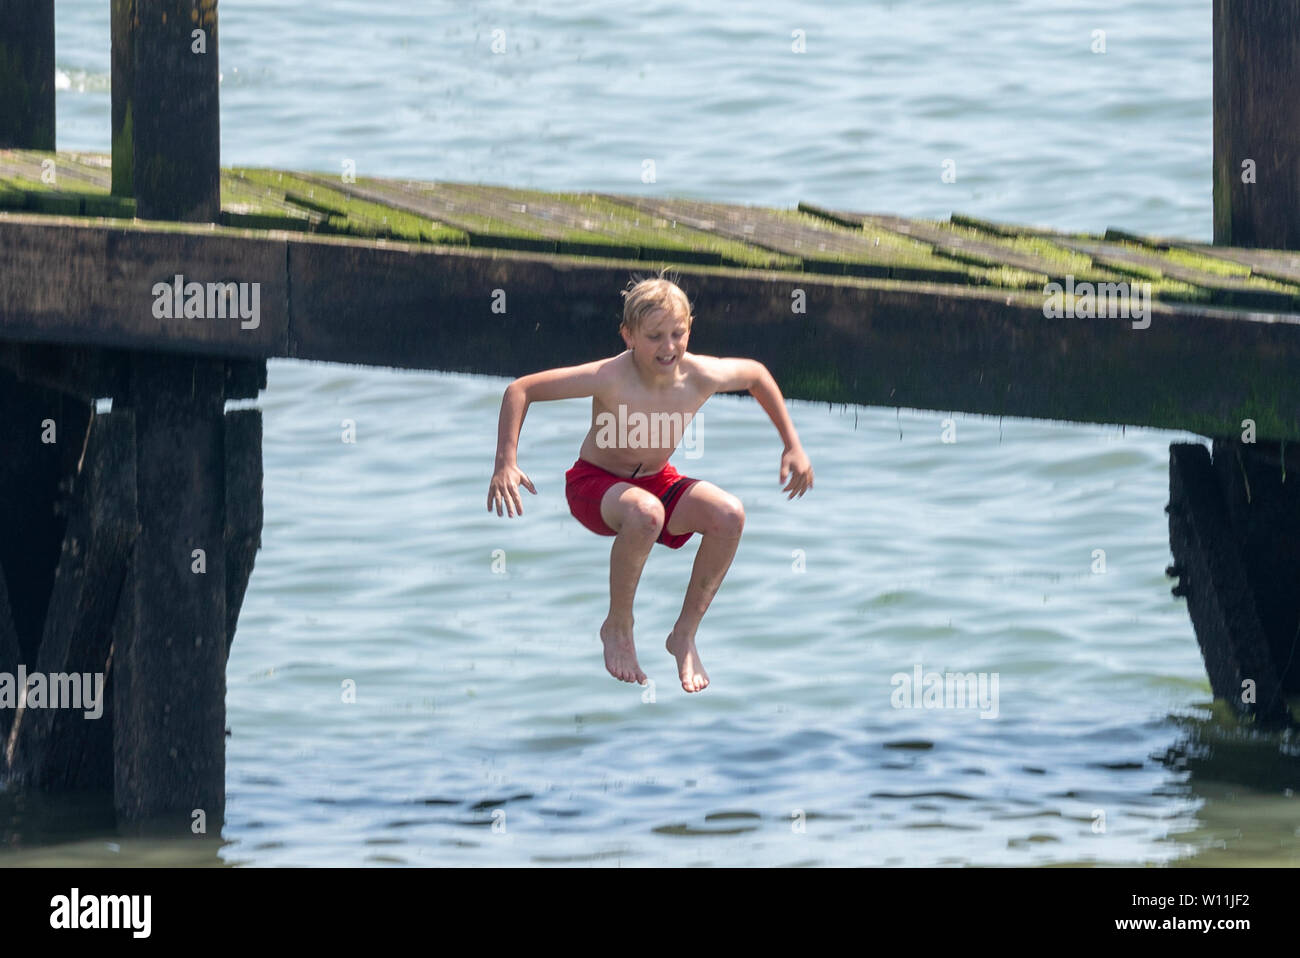 the-hot-heatwave-weather-has-brought-people-to-southend-to-enjoy-the-beaches-the-estuary-as-a-boy-jumps-into-the-river-thames-W11JF2.jpg